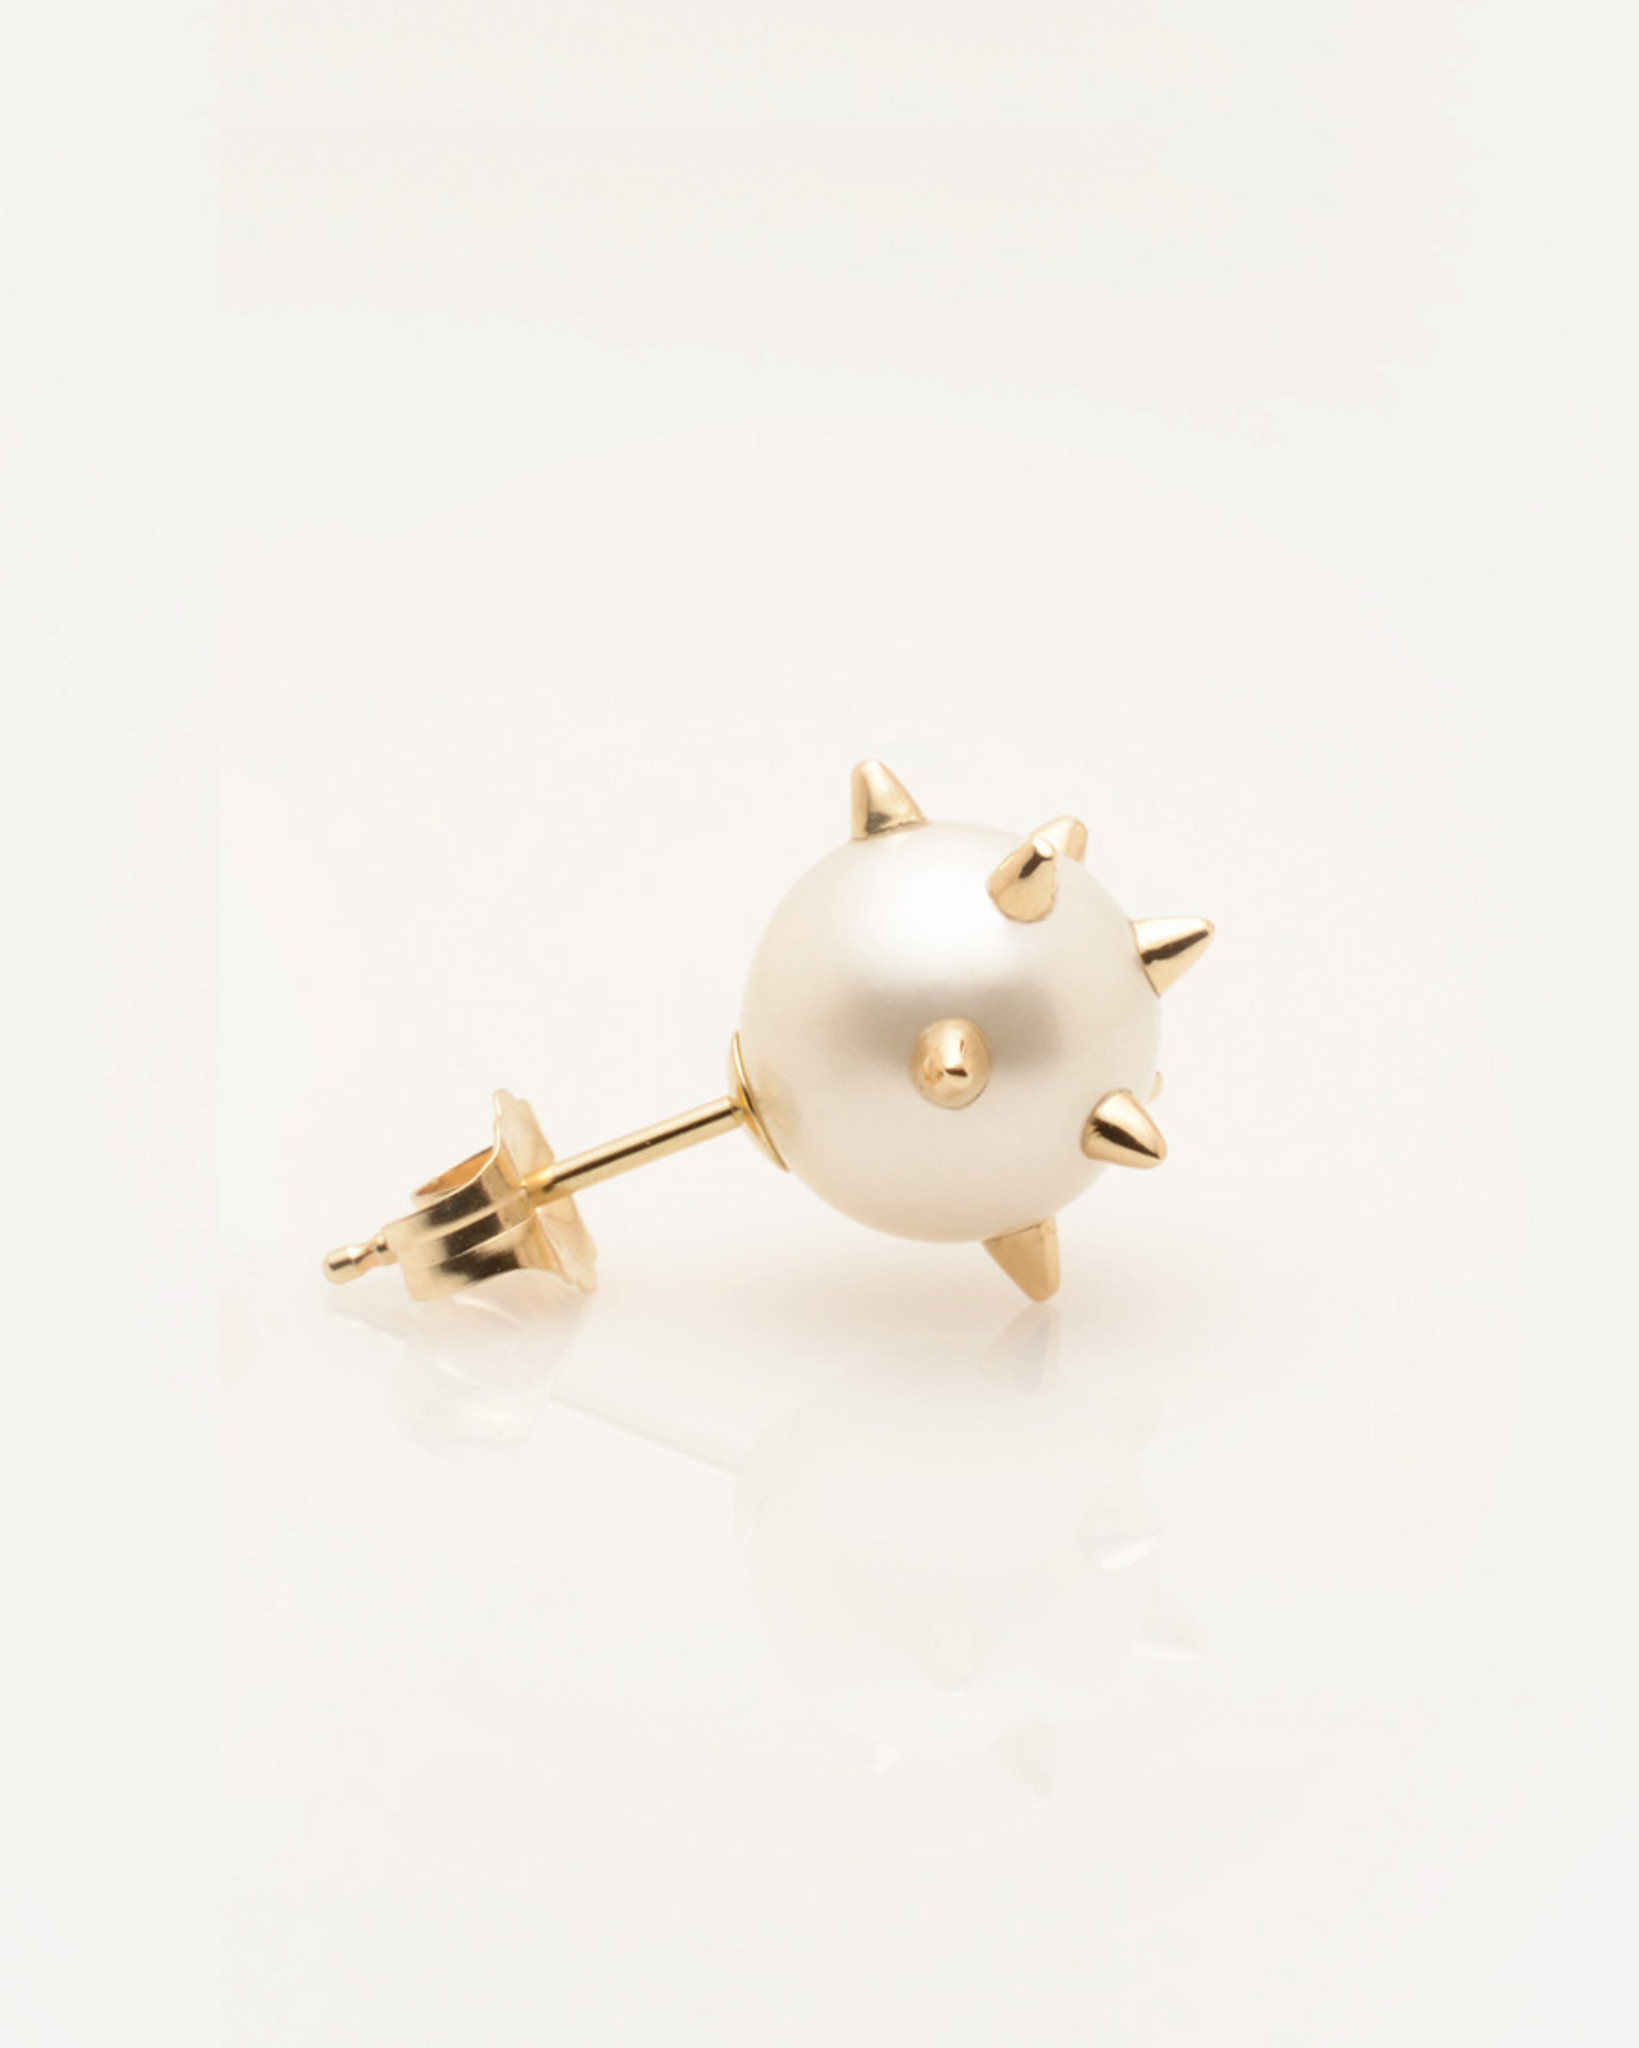 Side View of Single Cultured Freshwater Pearl Earring with 14k Gold Spikes & Post by Jewelry Designer Nektar De Stagni (8-9mm)